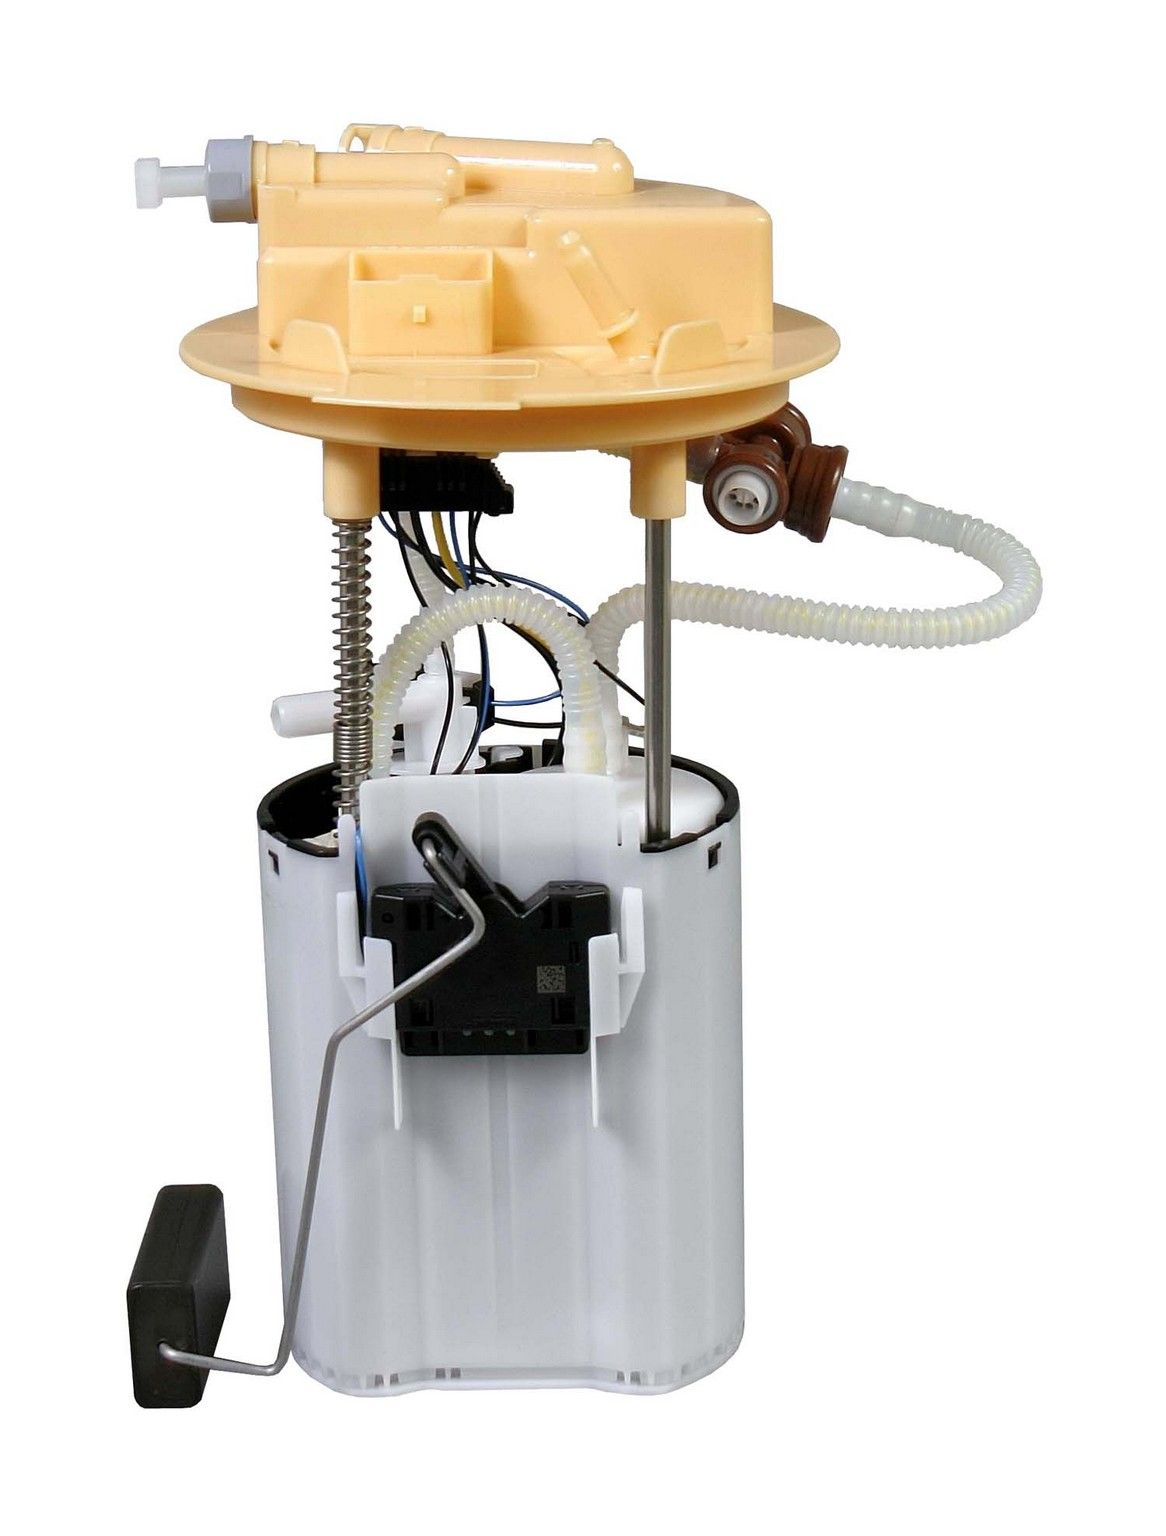 Volvo S60 Fuel Pump Module Assembly Replacement Airtex Bosch 2004 Filter 2013 N A 5 Cyl 25l E9134m No External Includes Sending Unit Float Reservoir And